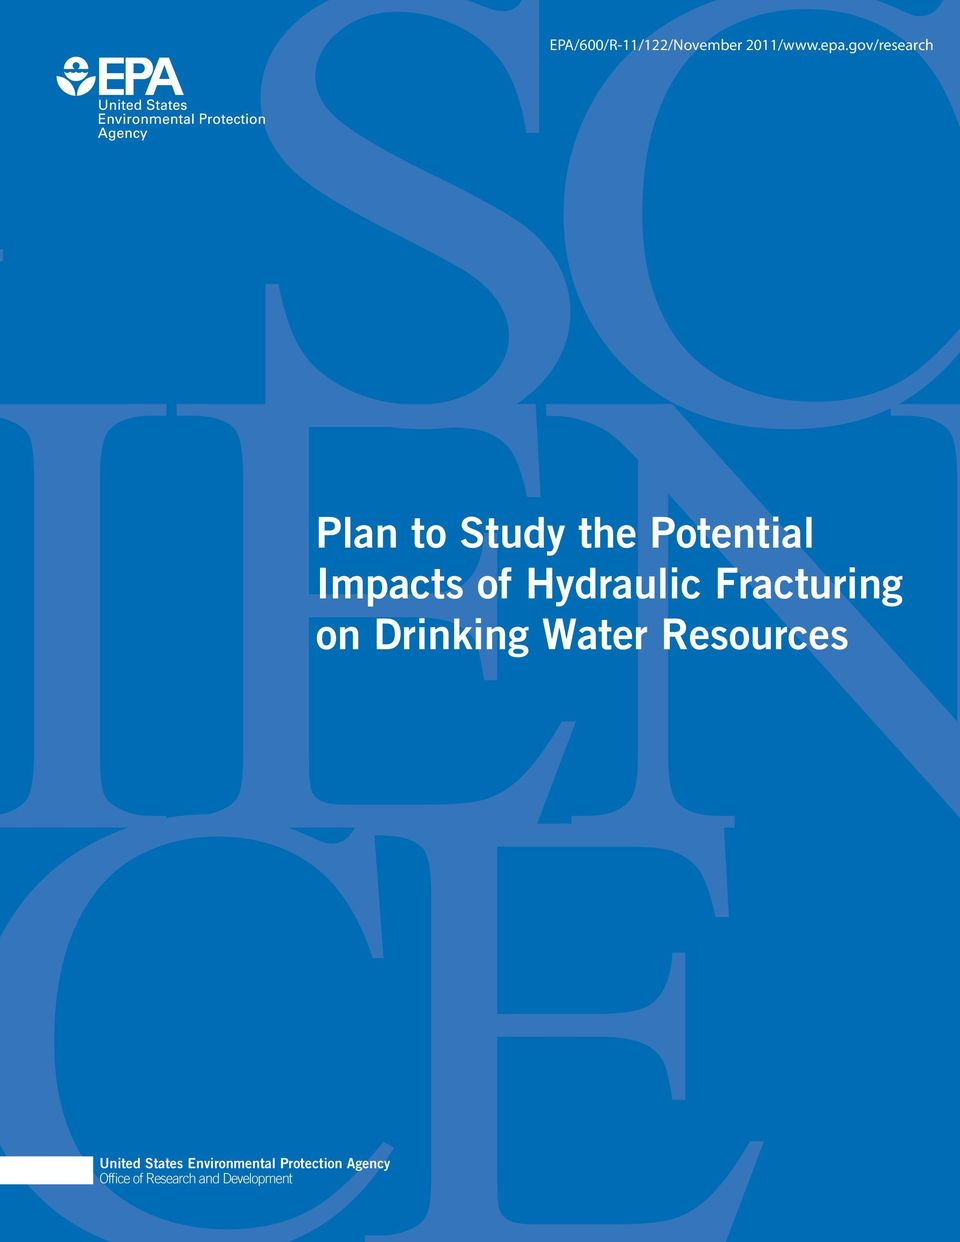 Hydraulic Fracturing on Drinking Water Resources